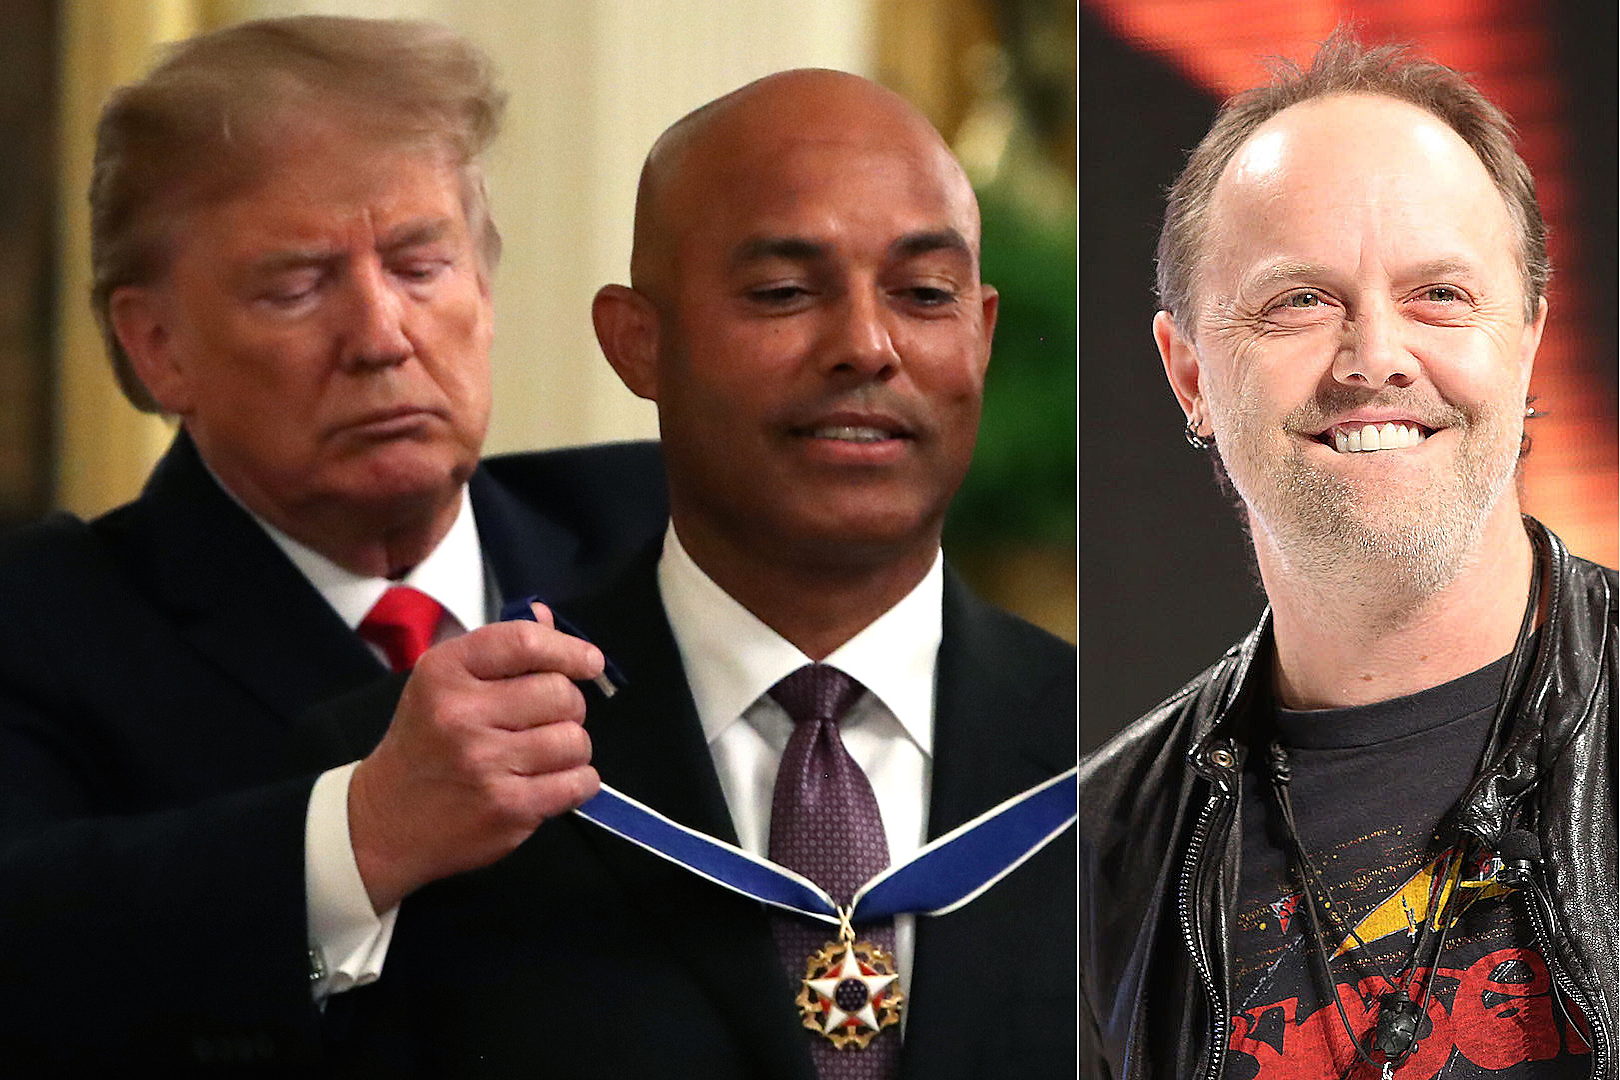 Donald Trump Walks Out to Metallica 'Enter Sandman' at White House Event